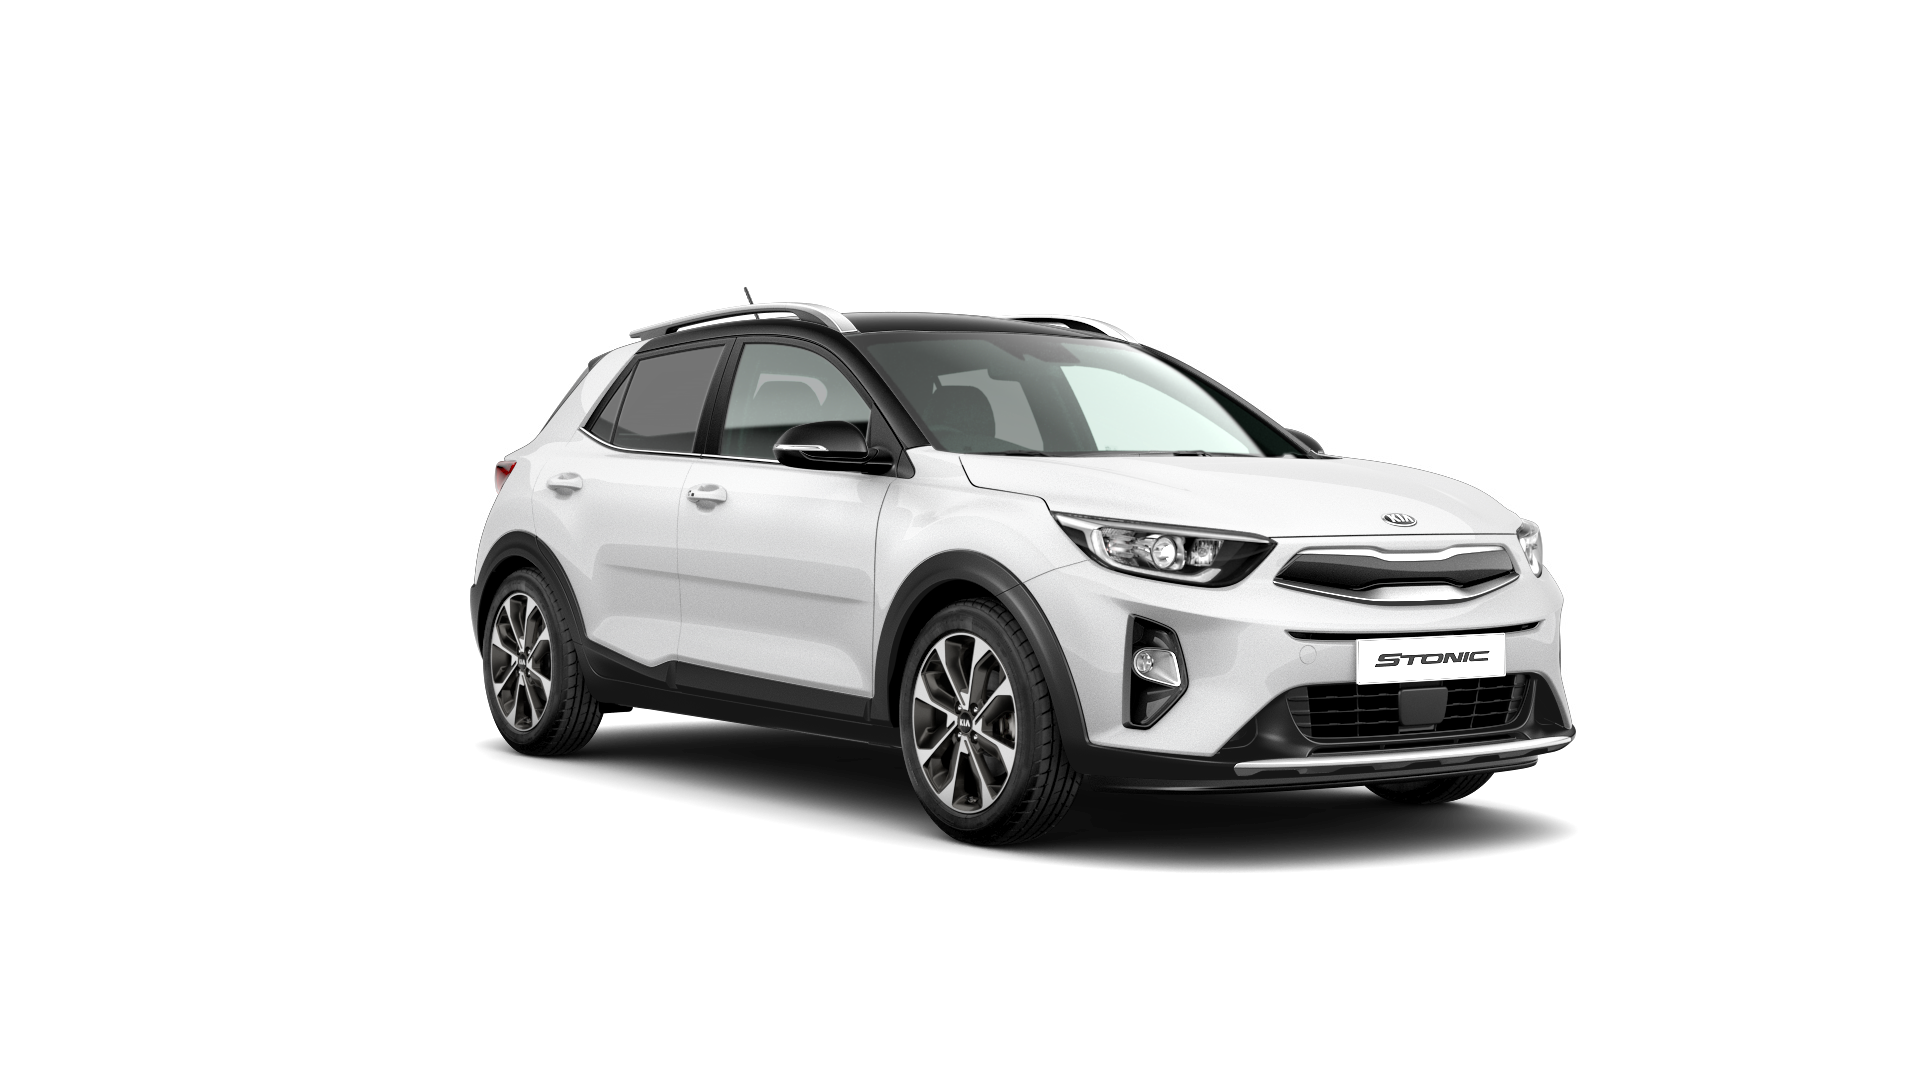 Kia Stonic First Edition - Clear White / Black